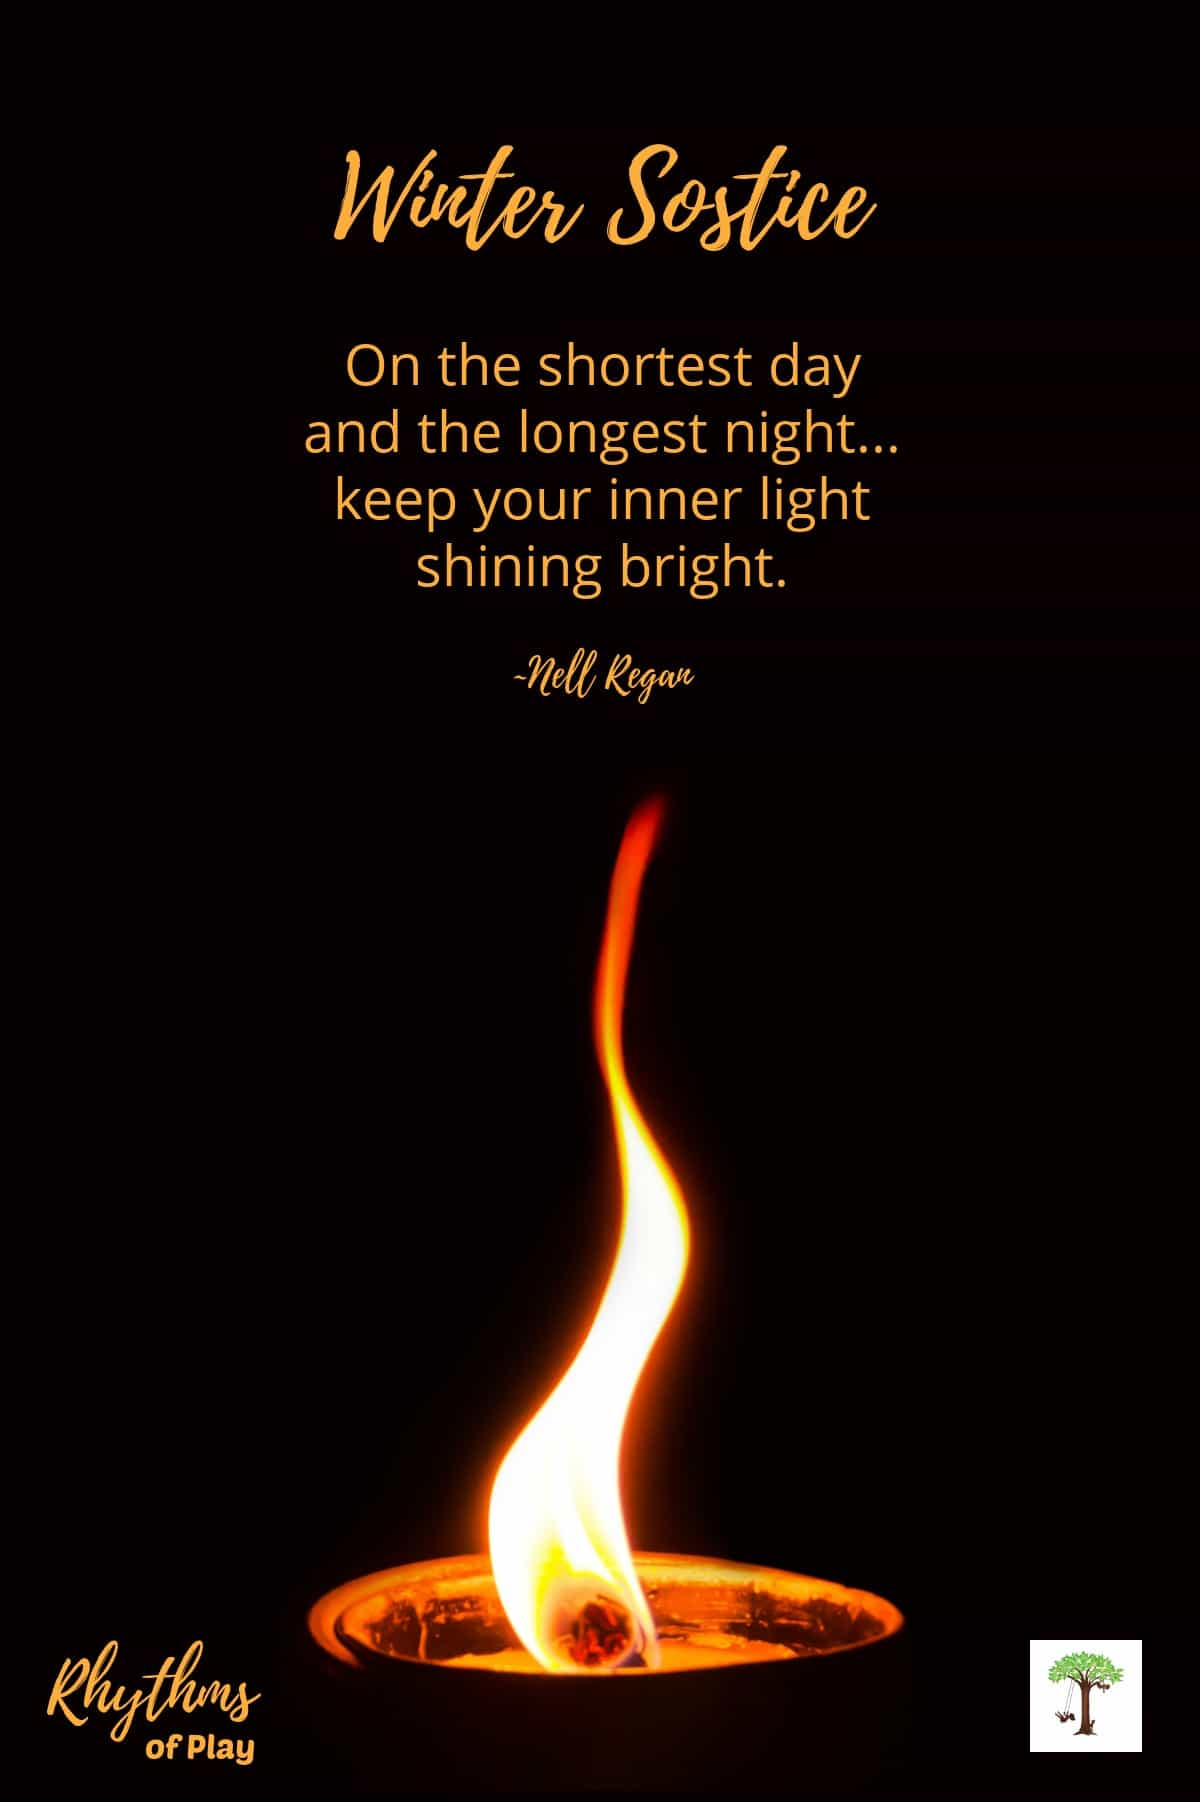 """Candle flame with poem """"On the shortest day and the longest night, keep your inner light shining bright."""" Winter solstice poem by Nell Regan"""